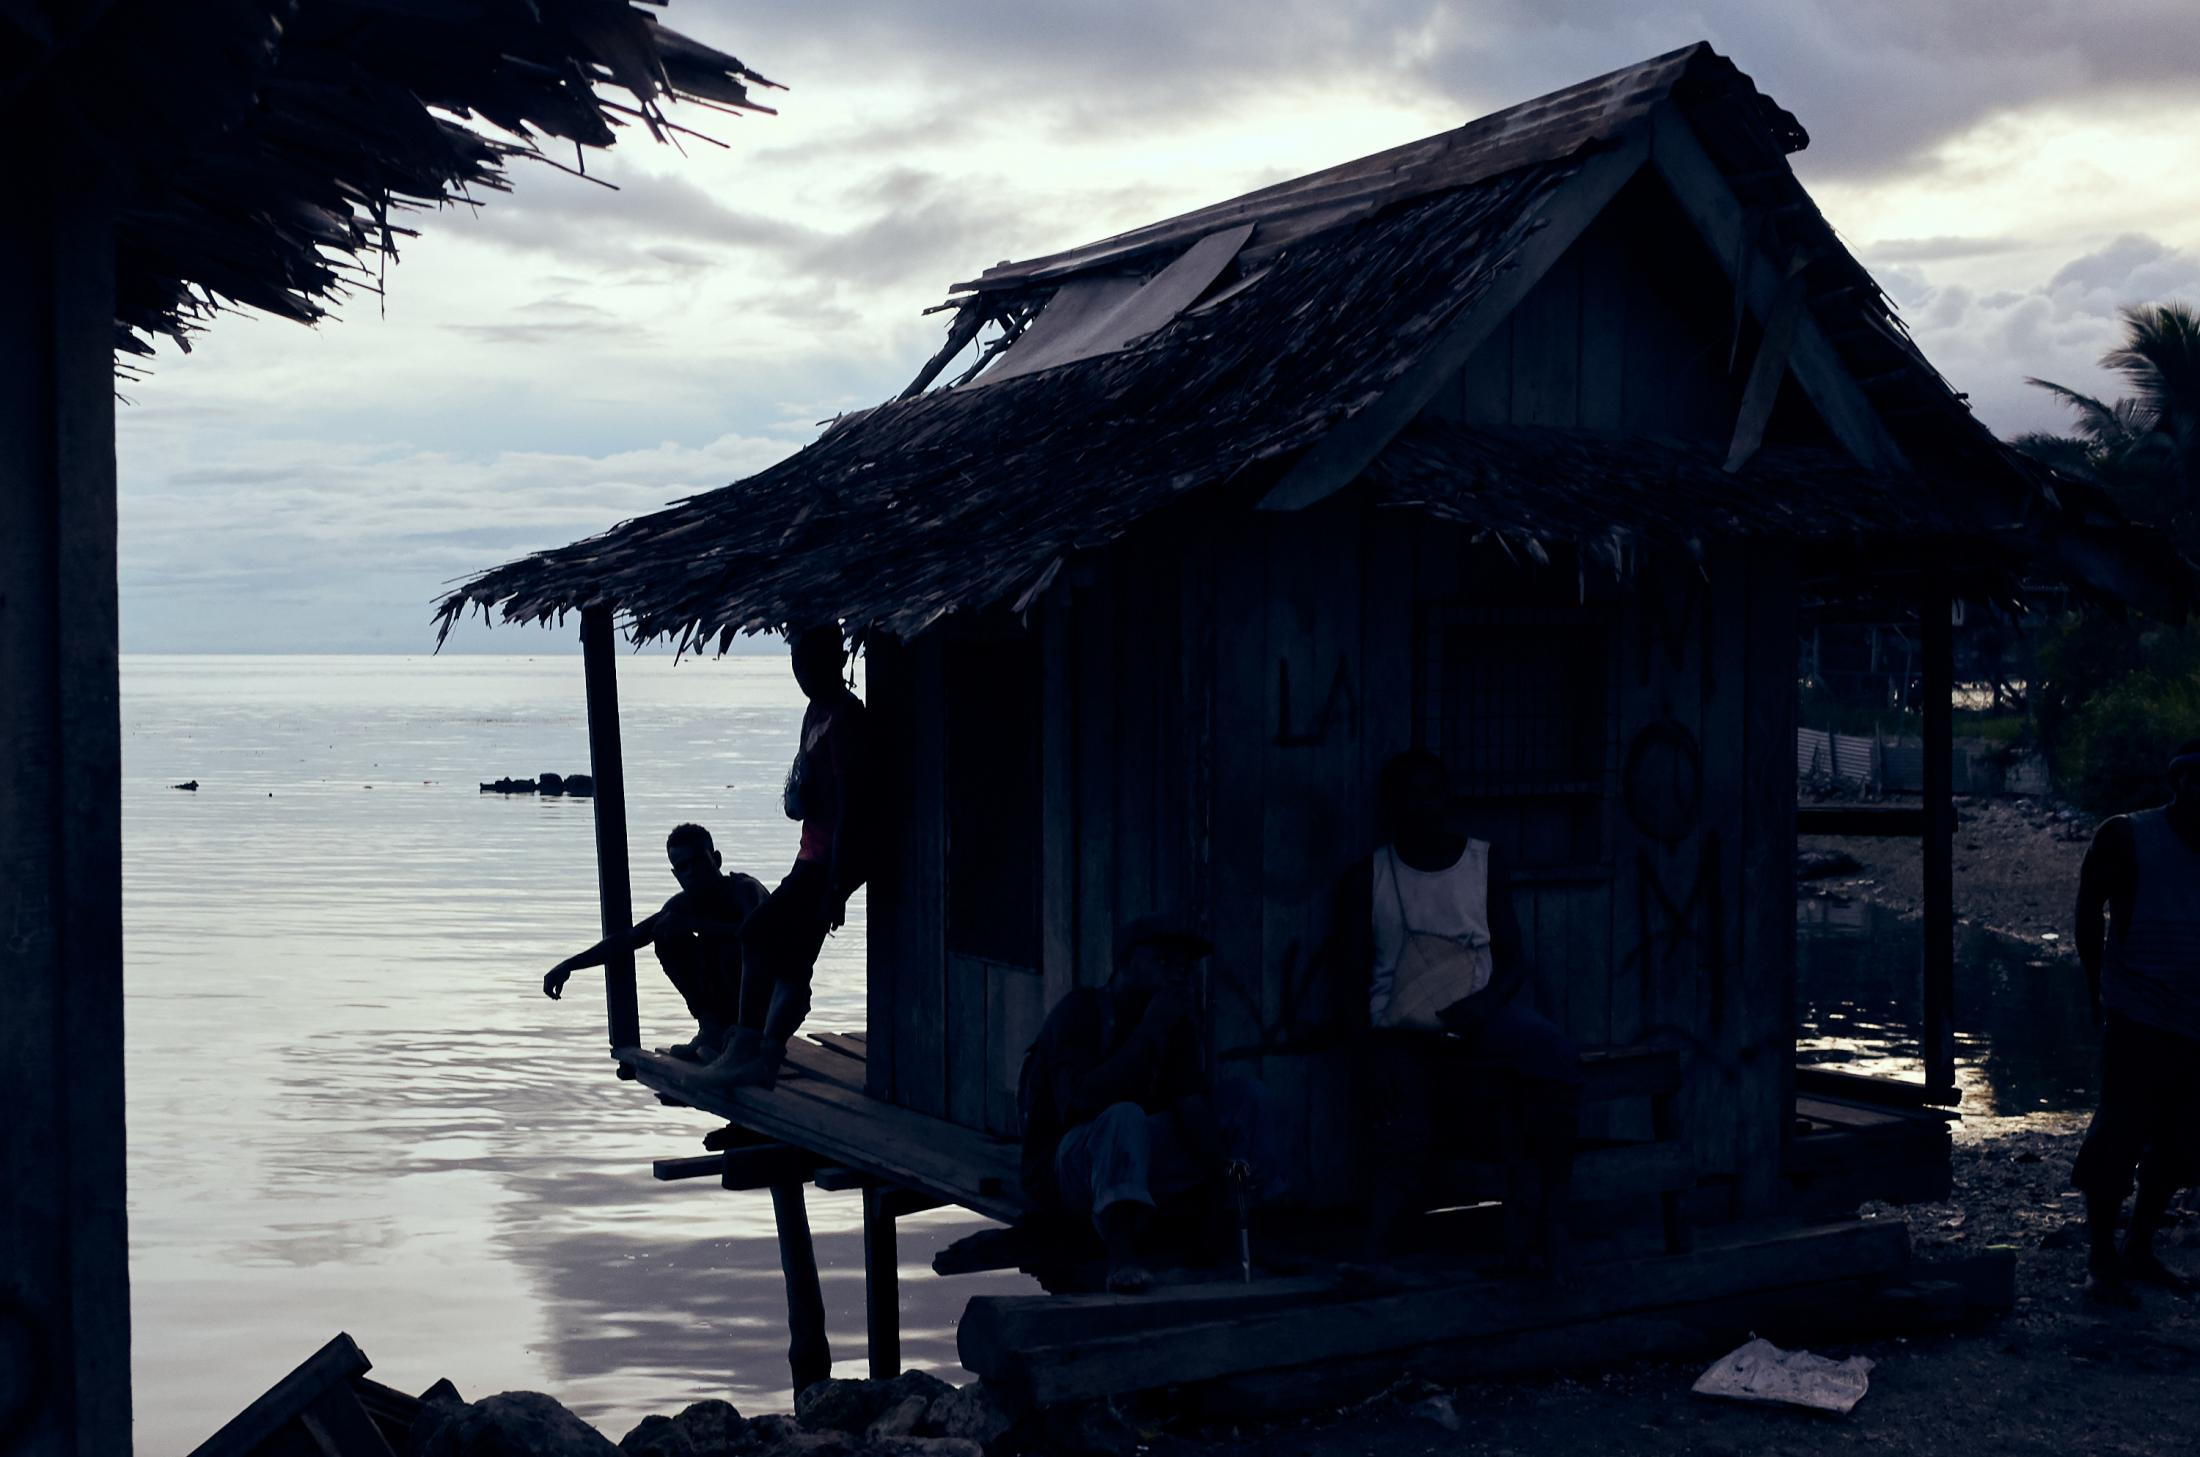 A small shack on the harbour in Auki, the capital of Malaita Province and the Solomon Islands' second-largest city.